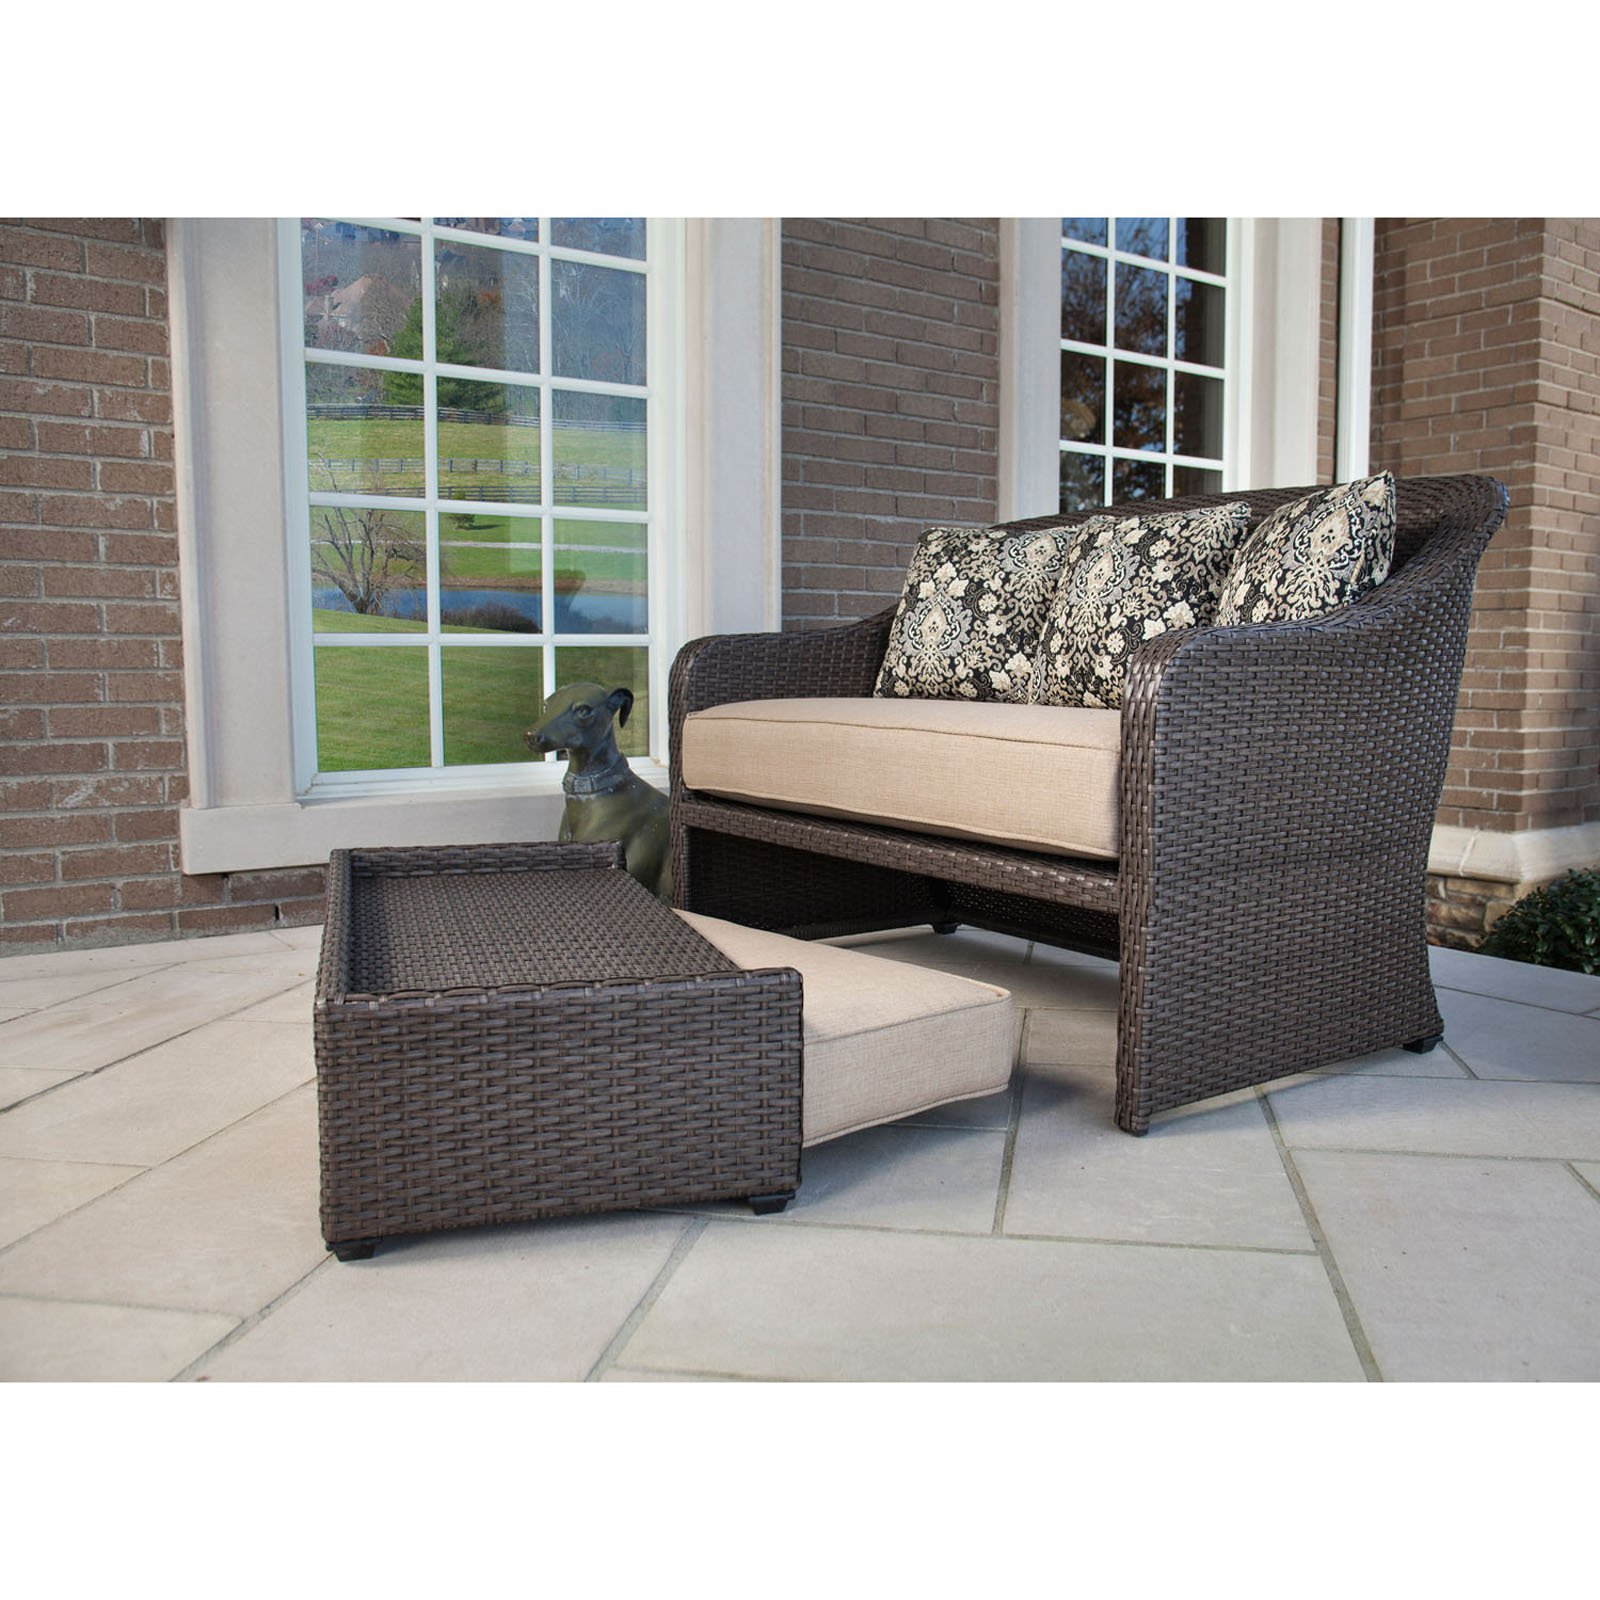 Swell Hanover Outdoor Furniture Langdon Hills 2 Piece Cuddle Set Ncnpc Chair Design For Home Ncnpcorg